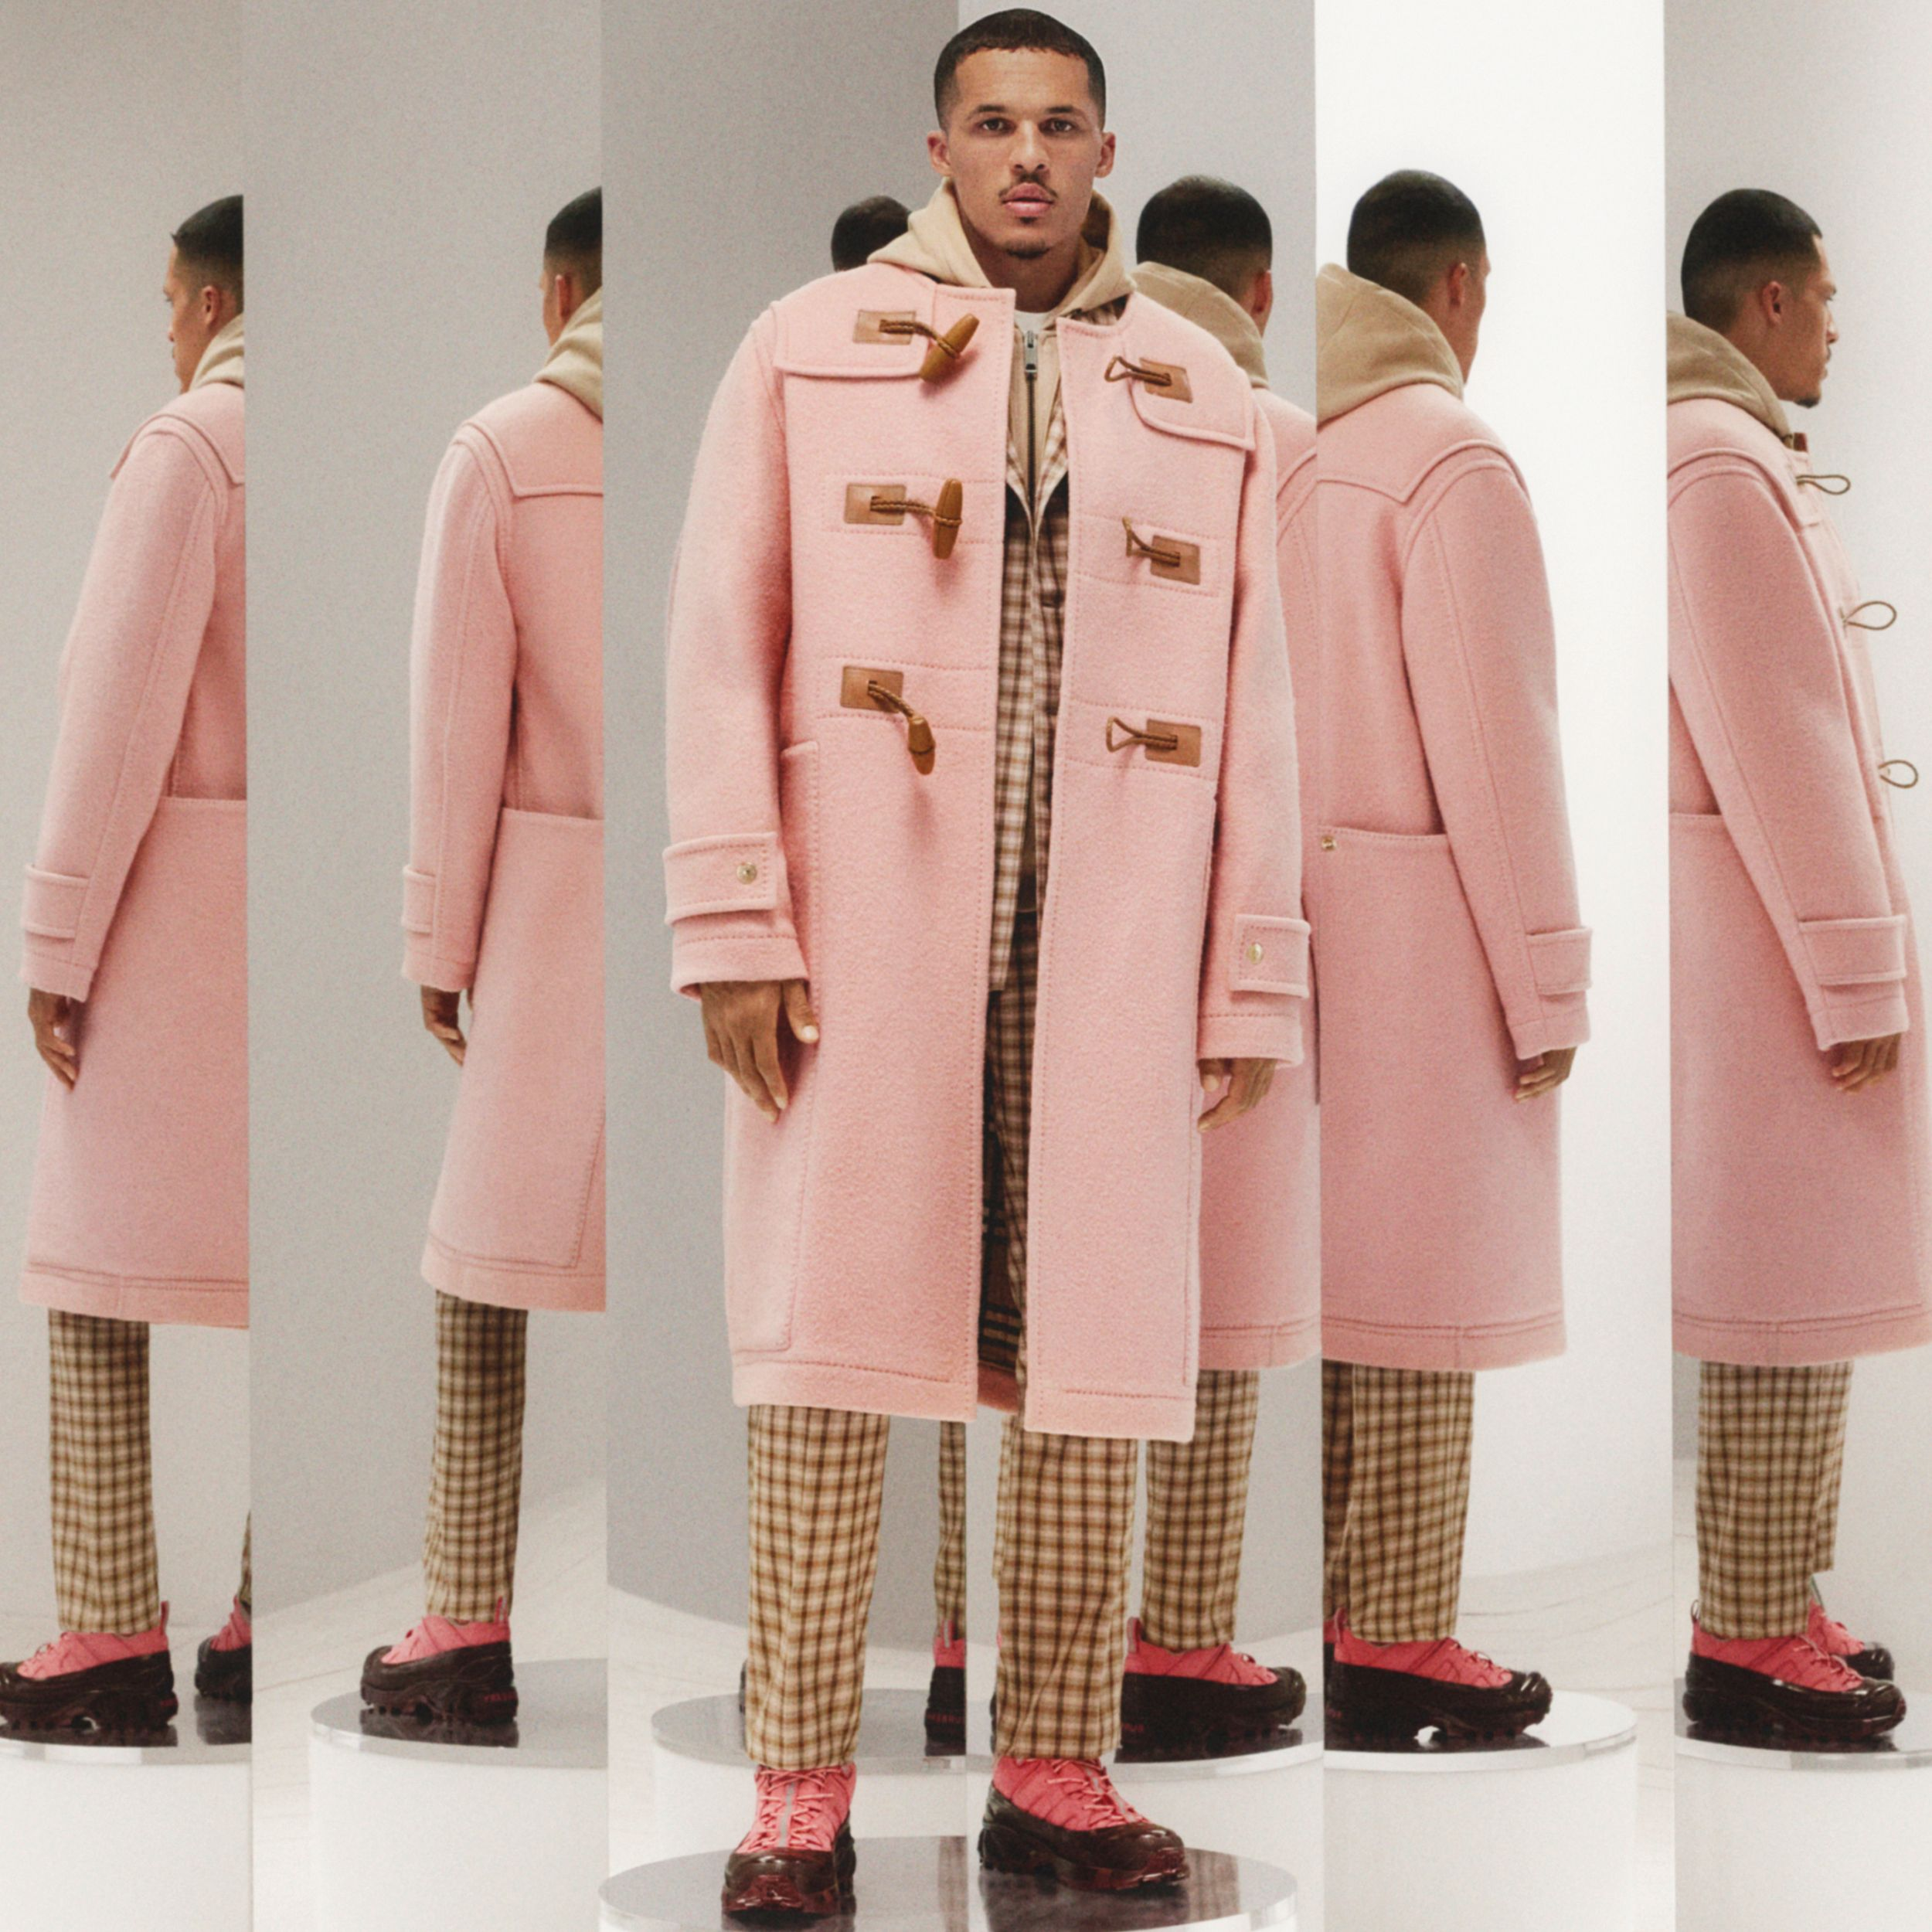 Vintage Check-lined Felted Wool Duffle Coat in Dusty Pink - Men | Burberry - 2